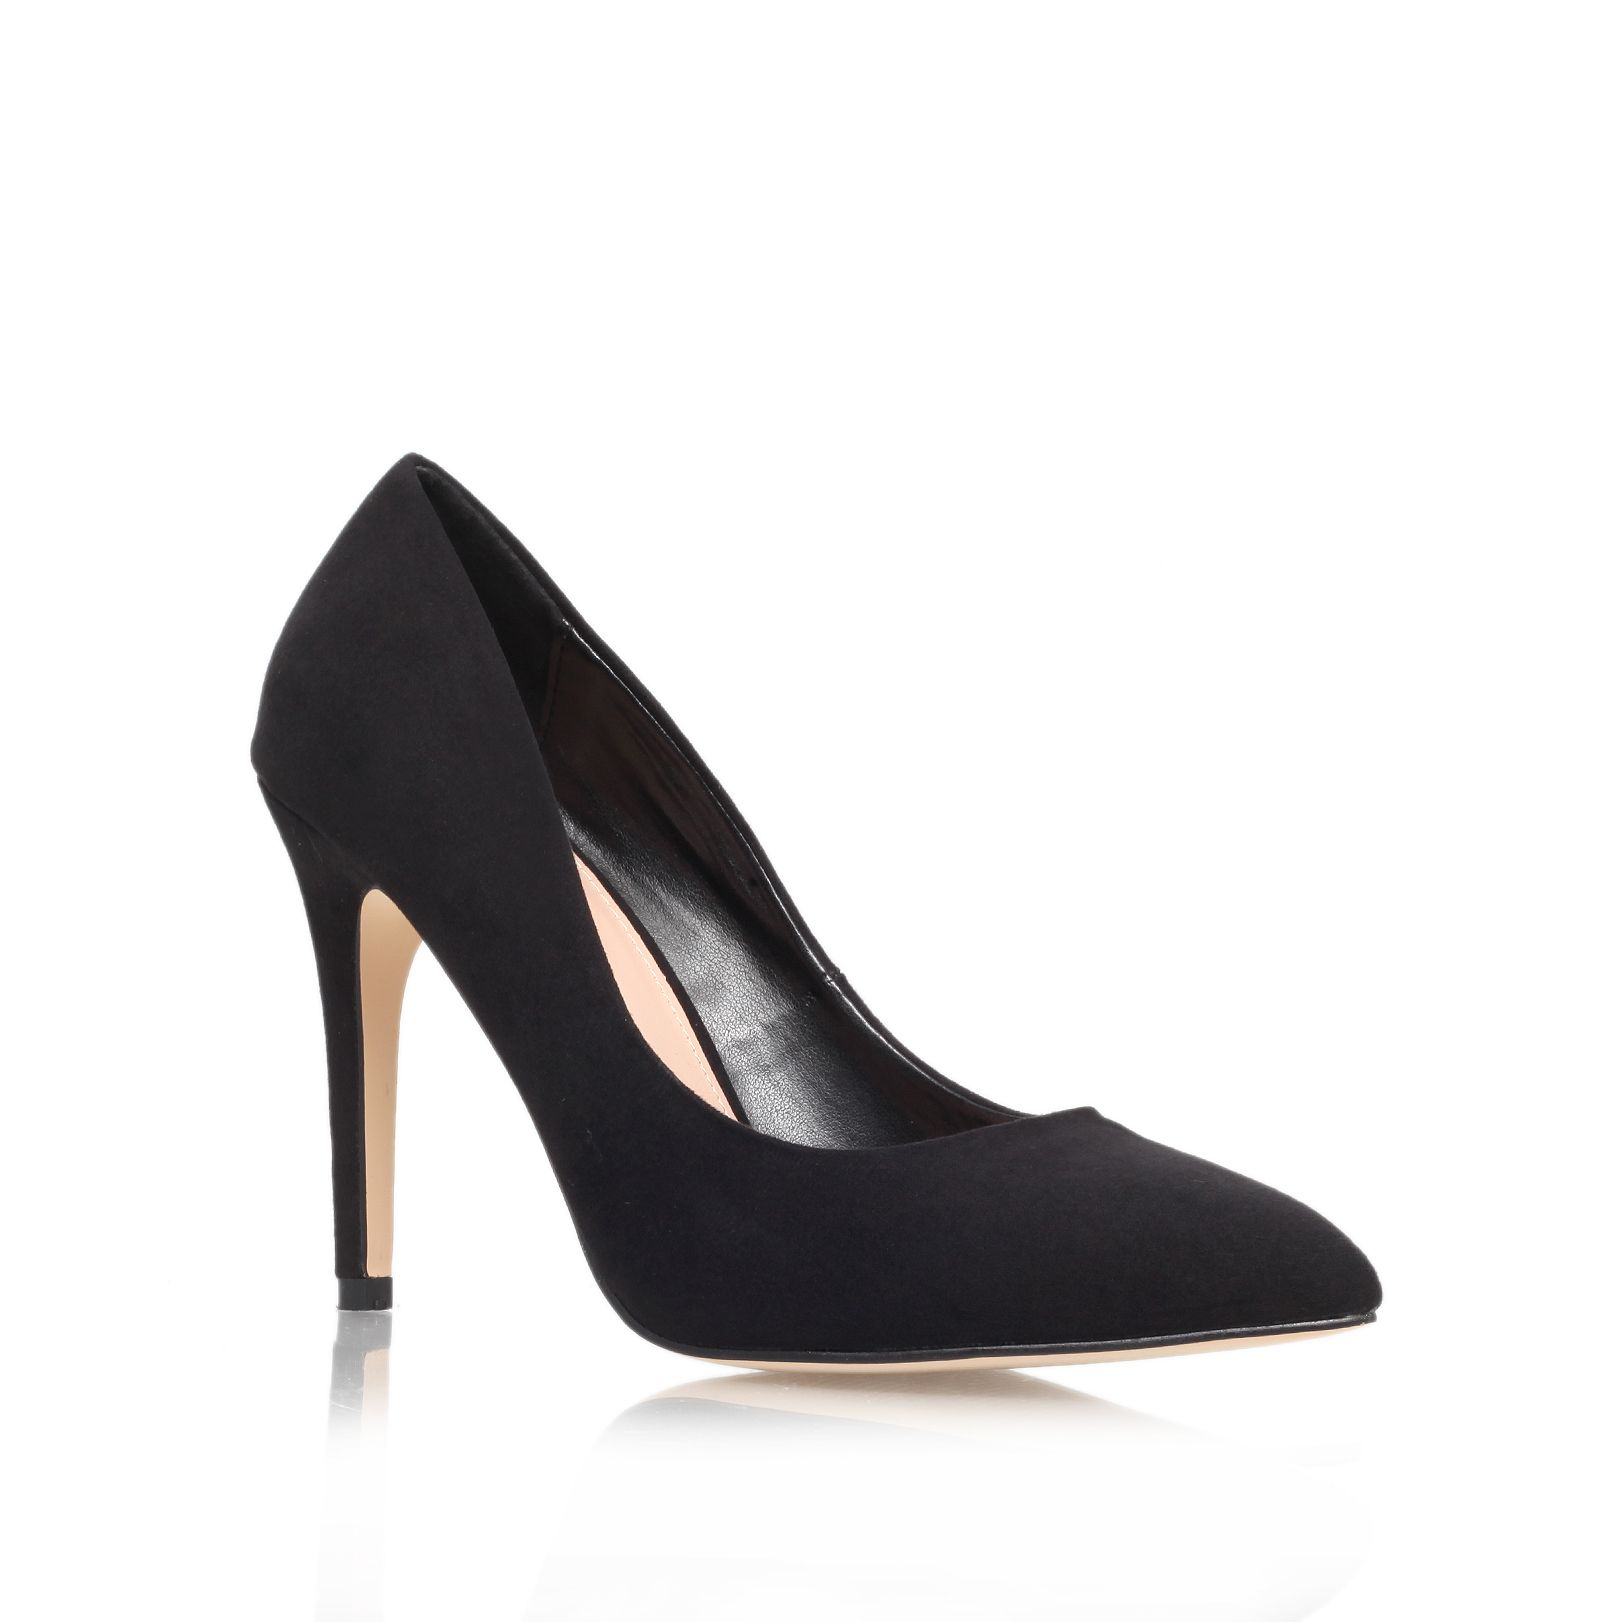 Carrie high heel court shoes